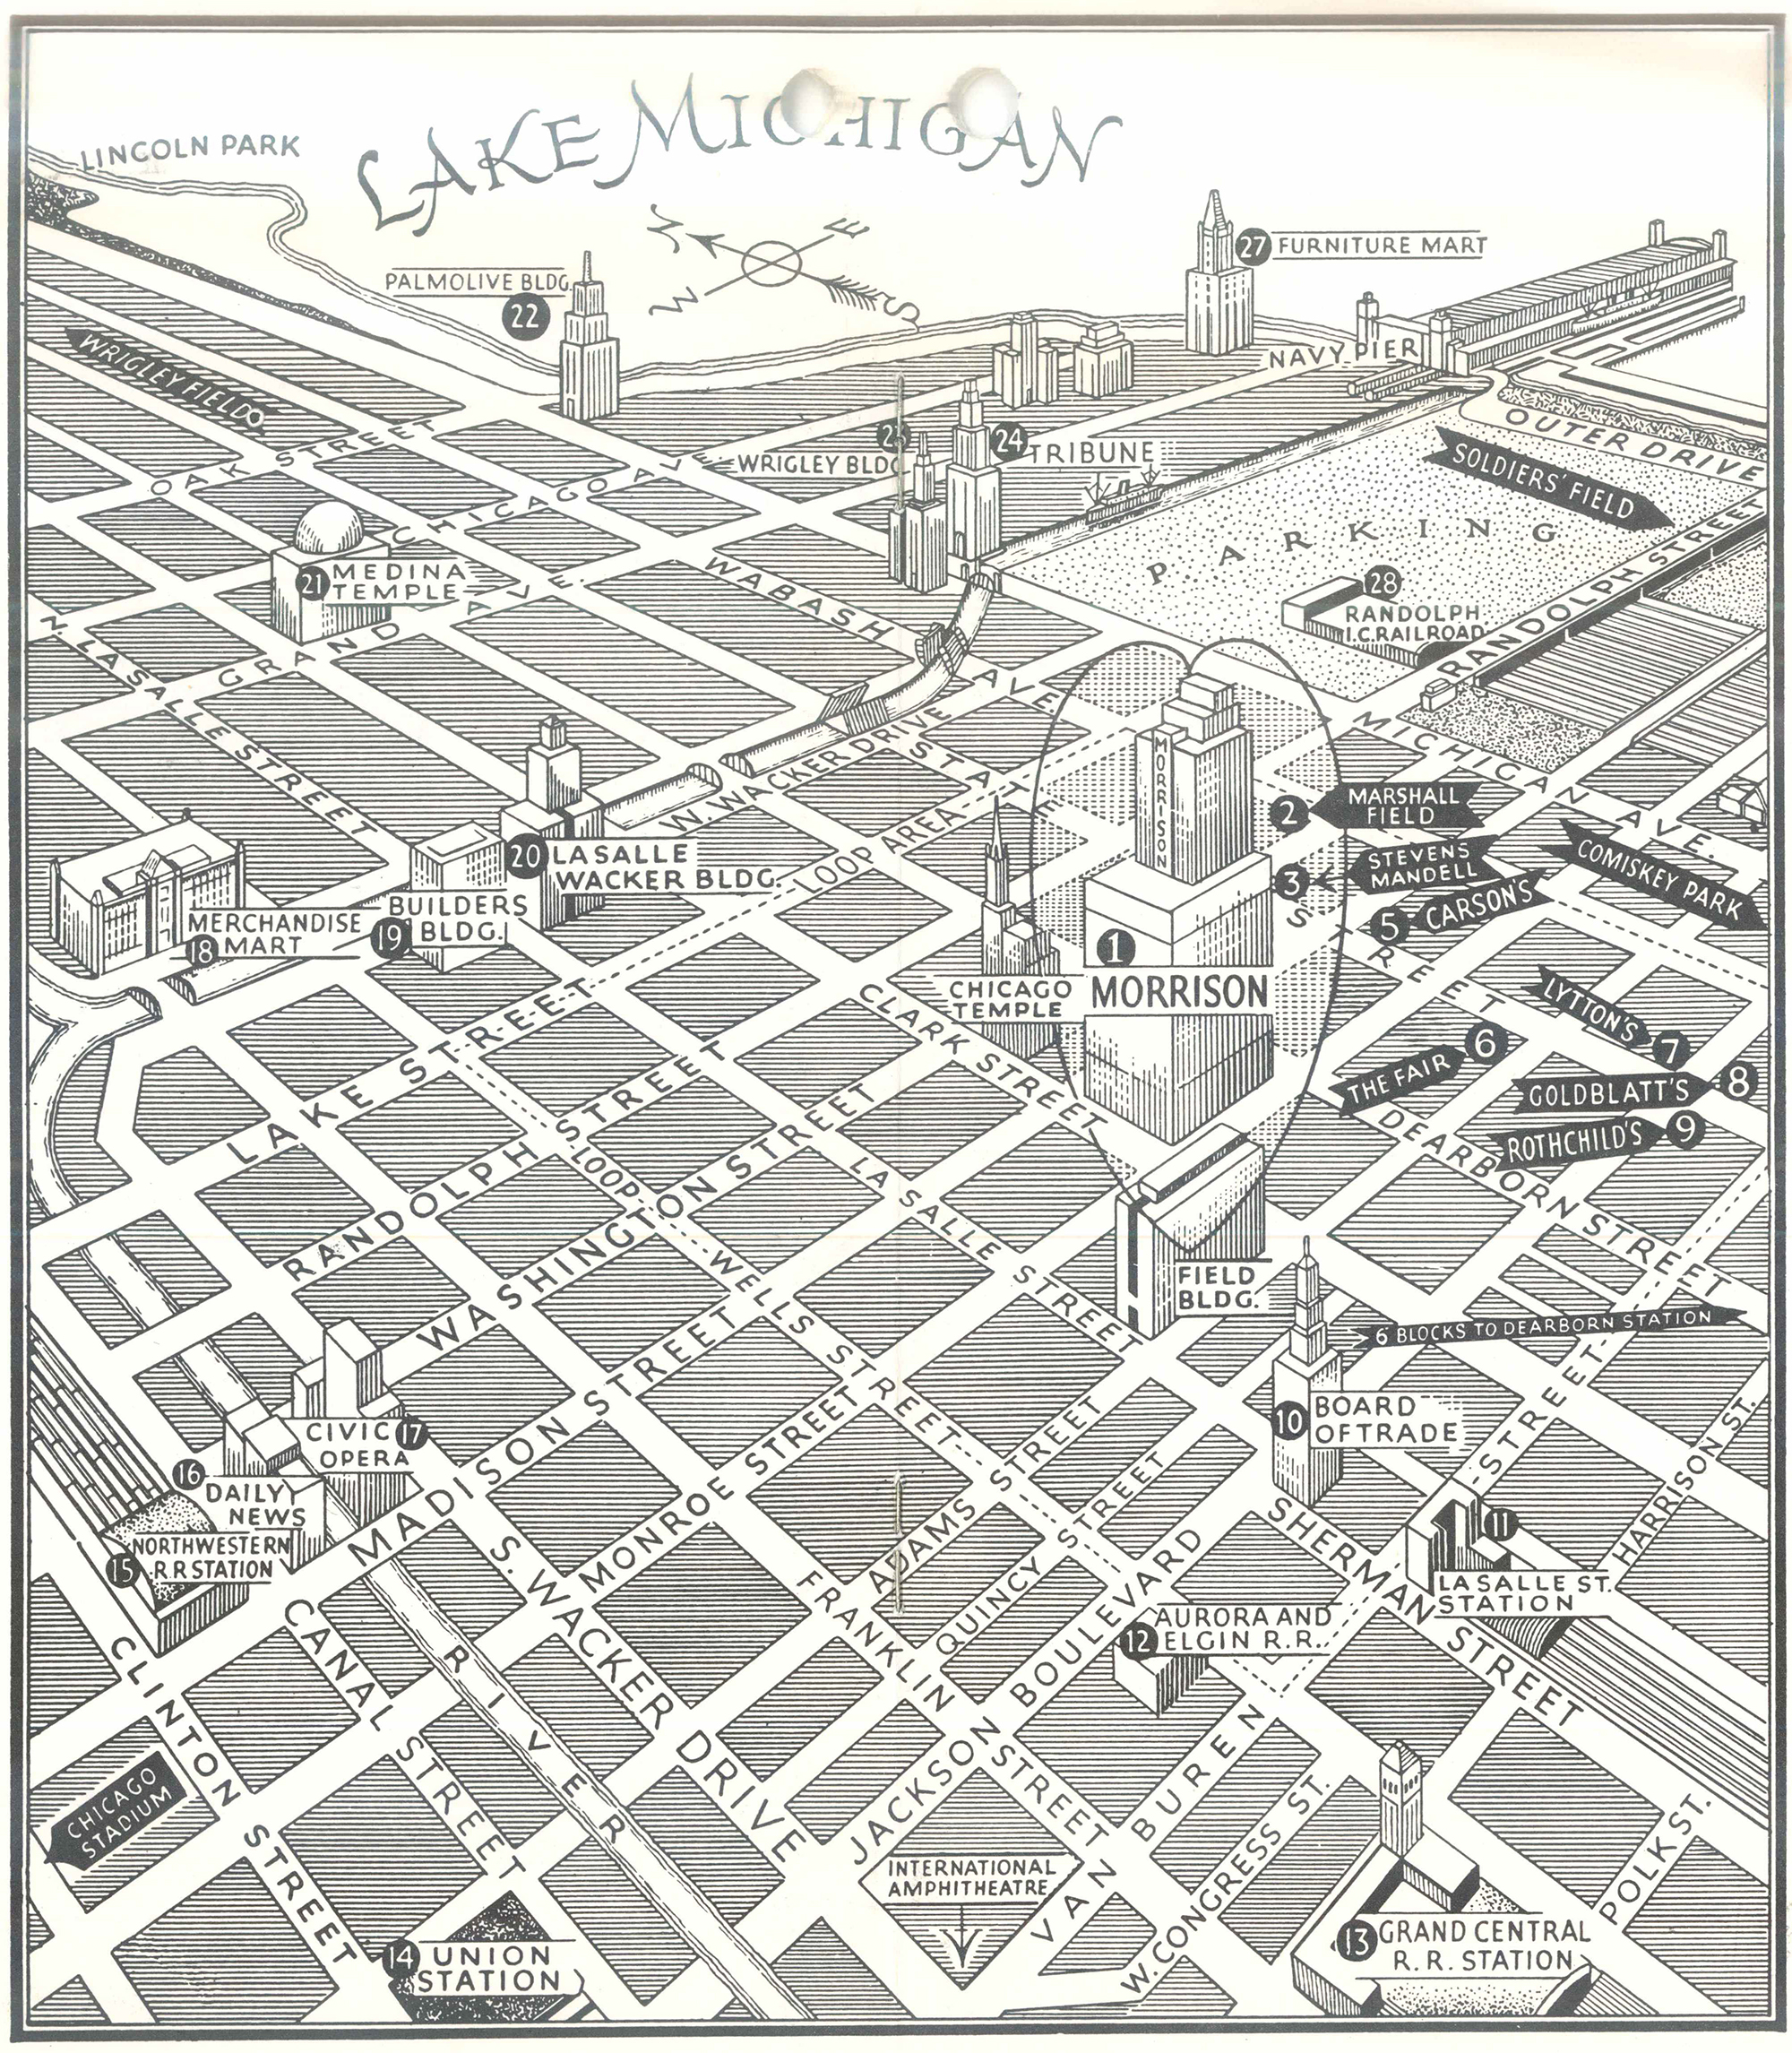 Map of Chicago from 1959.